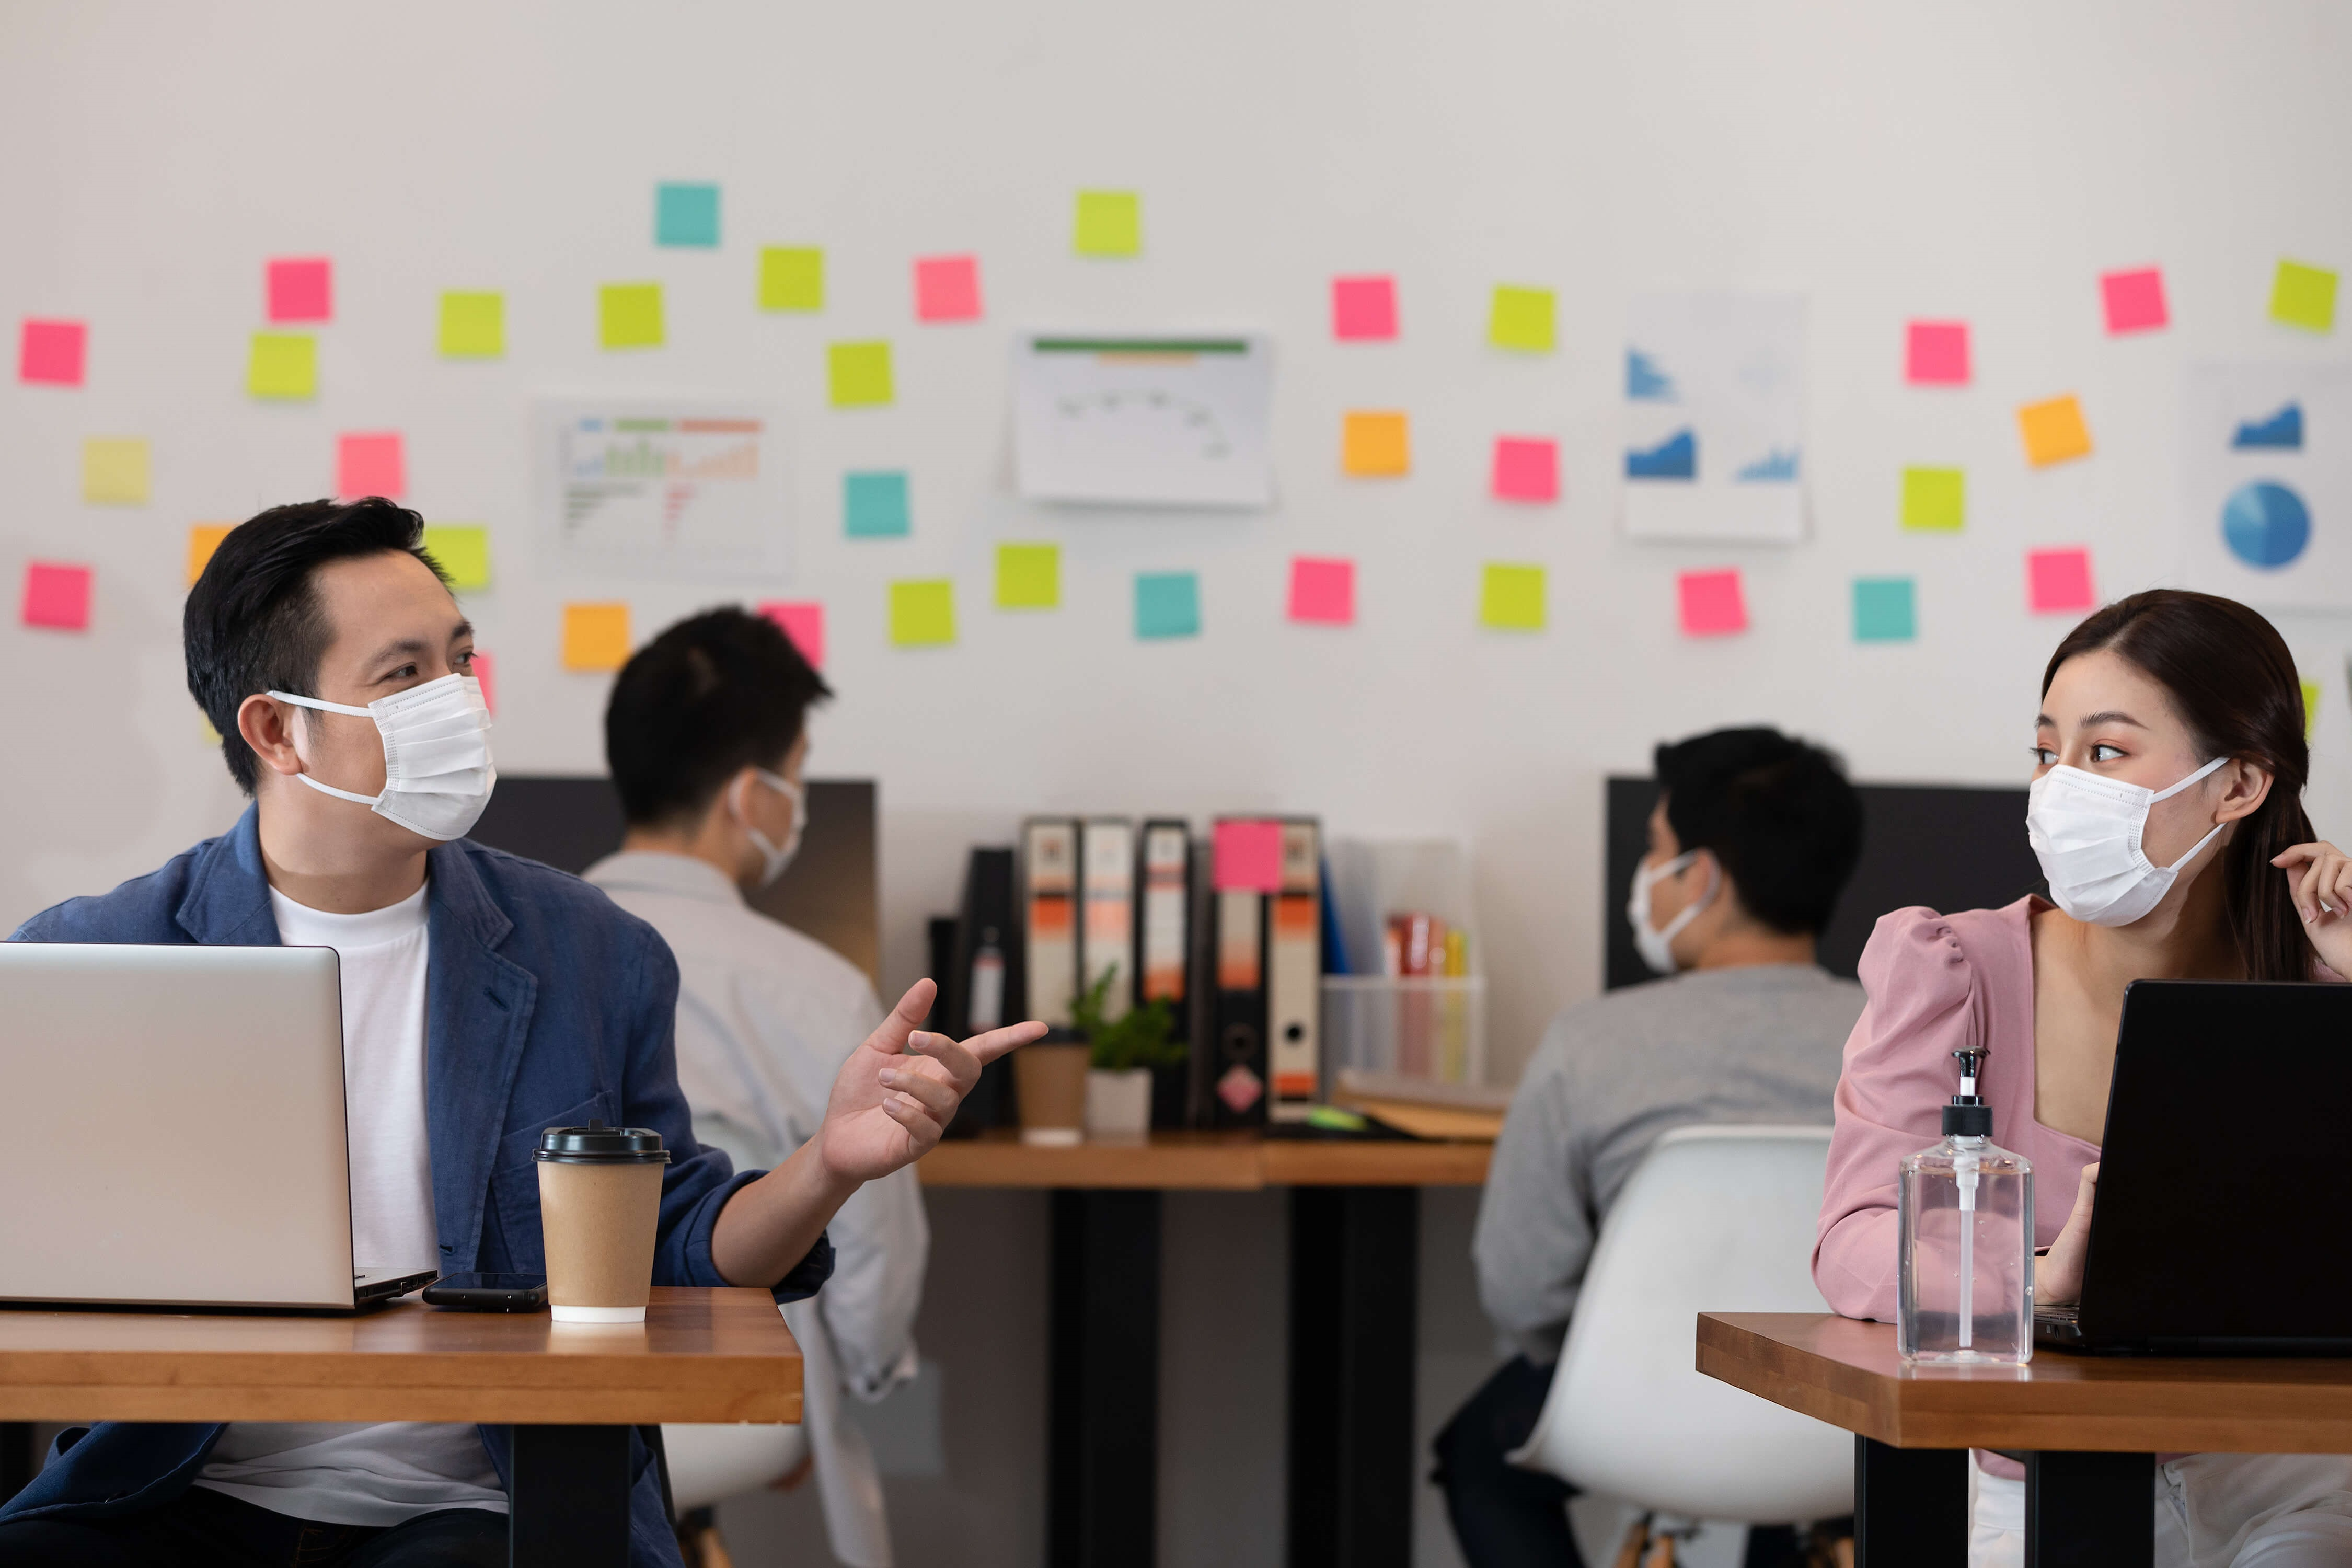 employee engagement and wellbeing